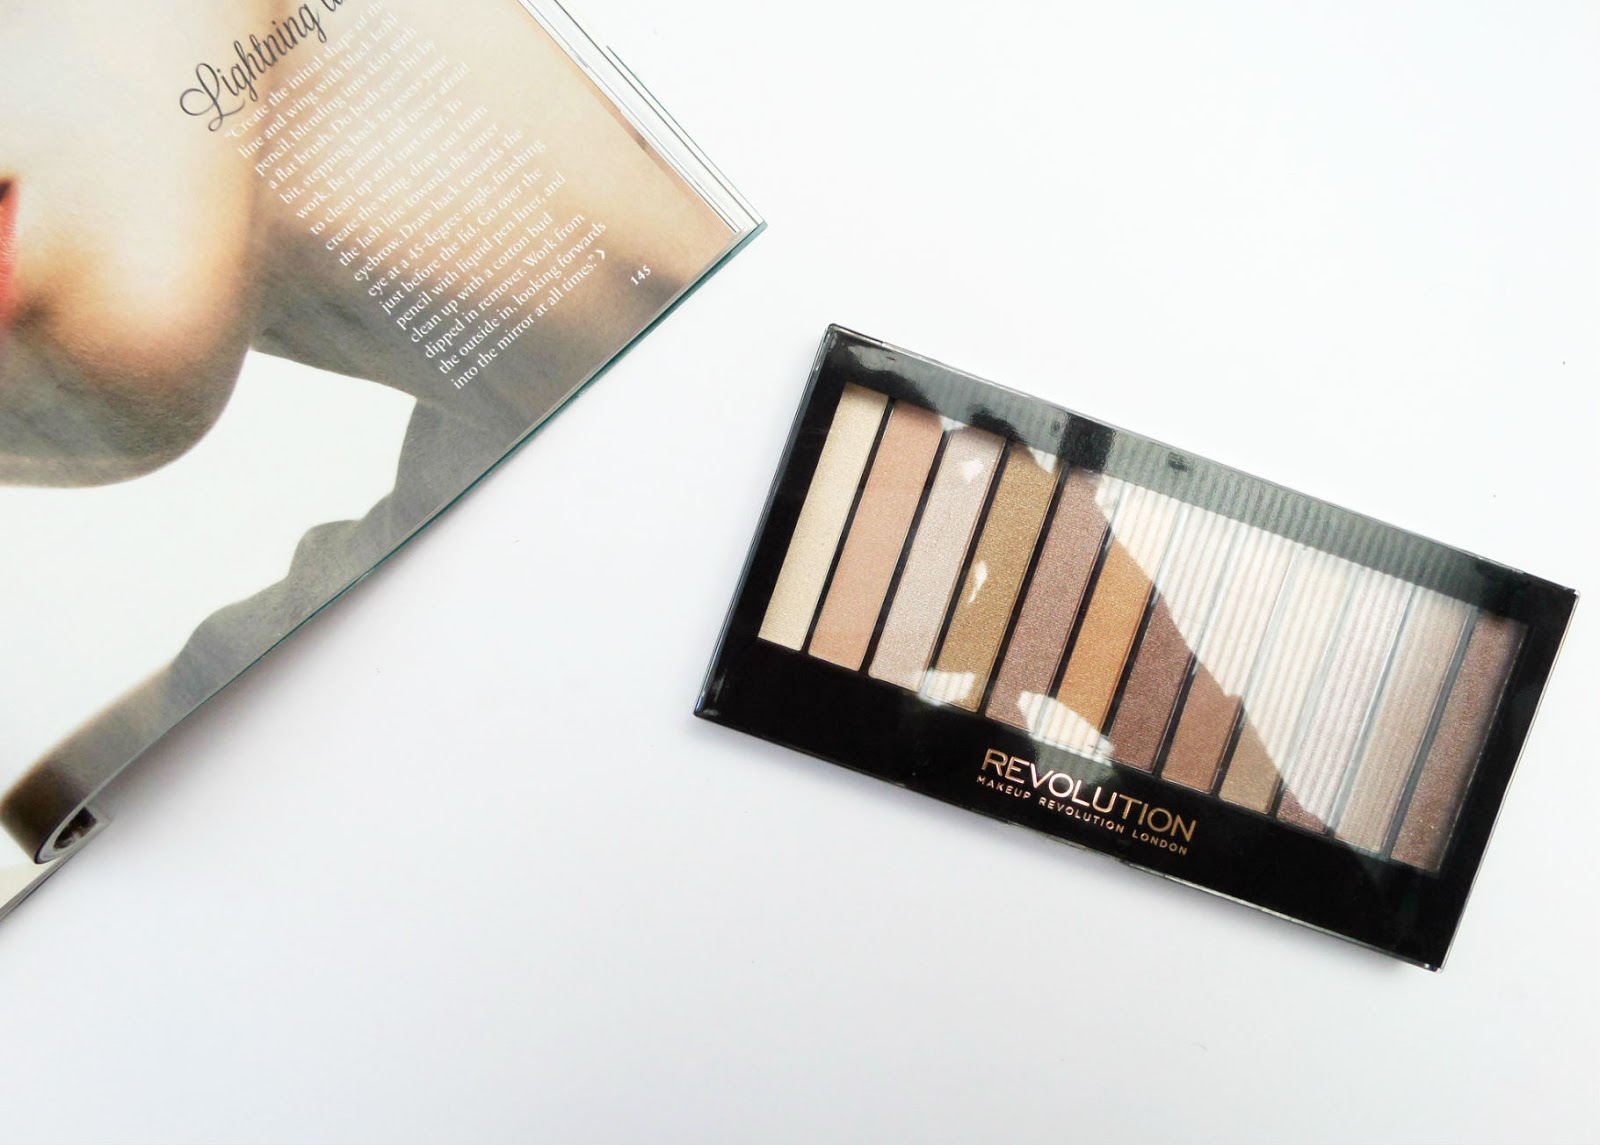 Makeup Revolution Essential Shimmer Eyeshadow Palette Review